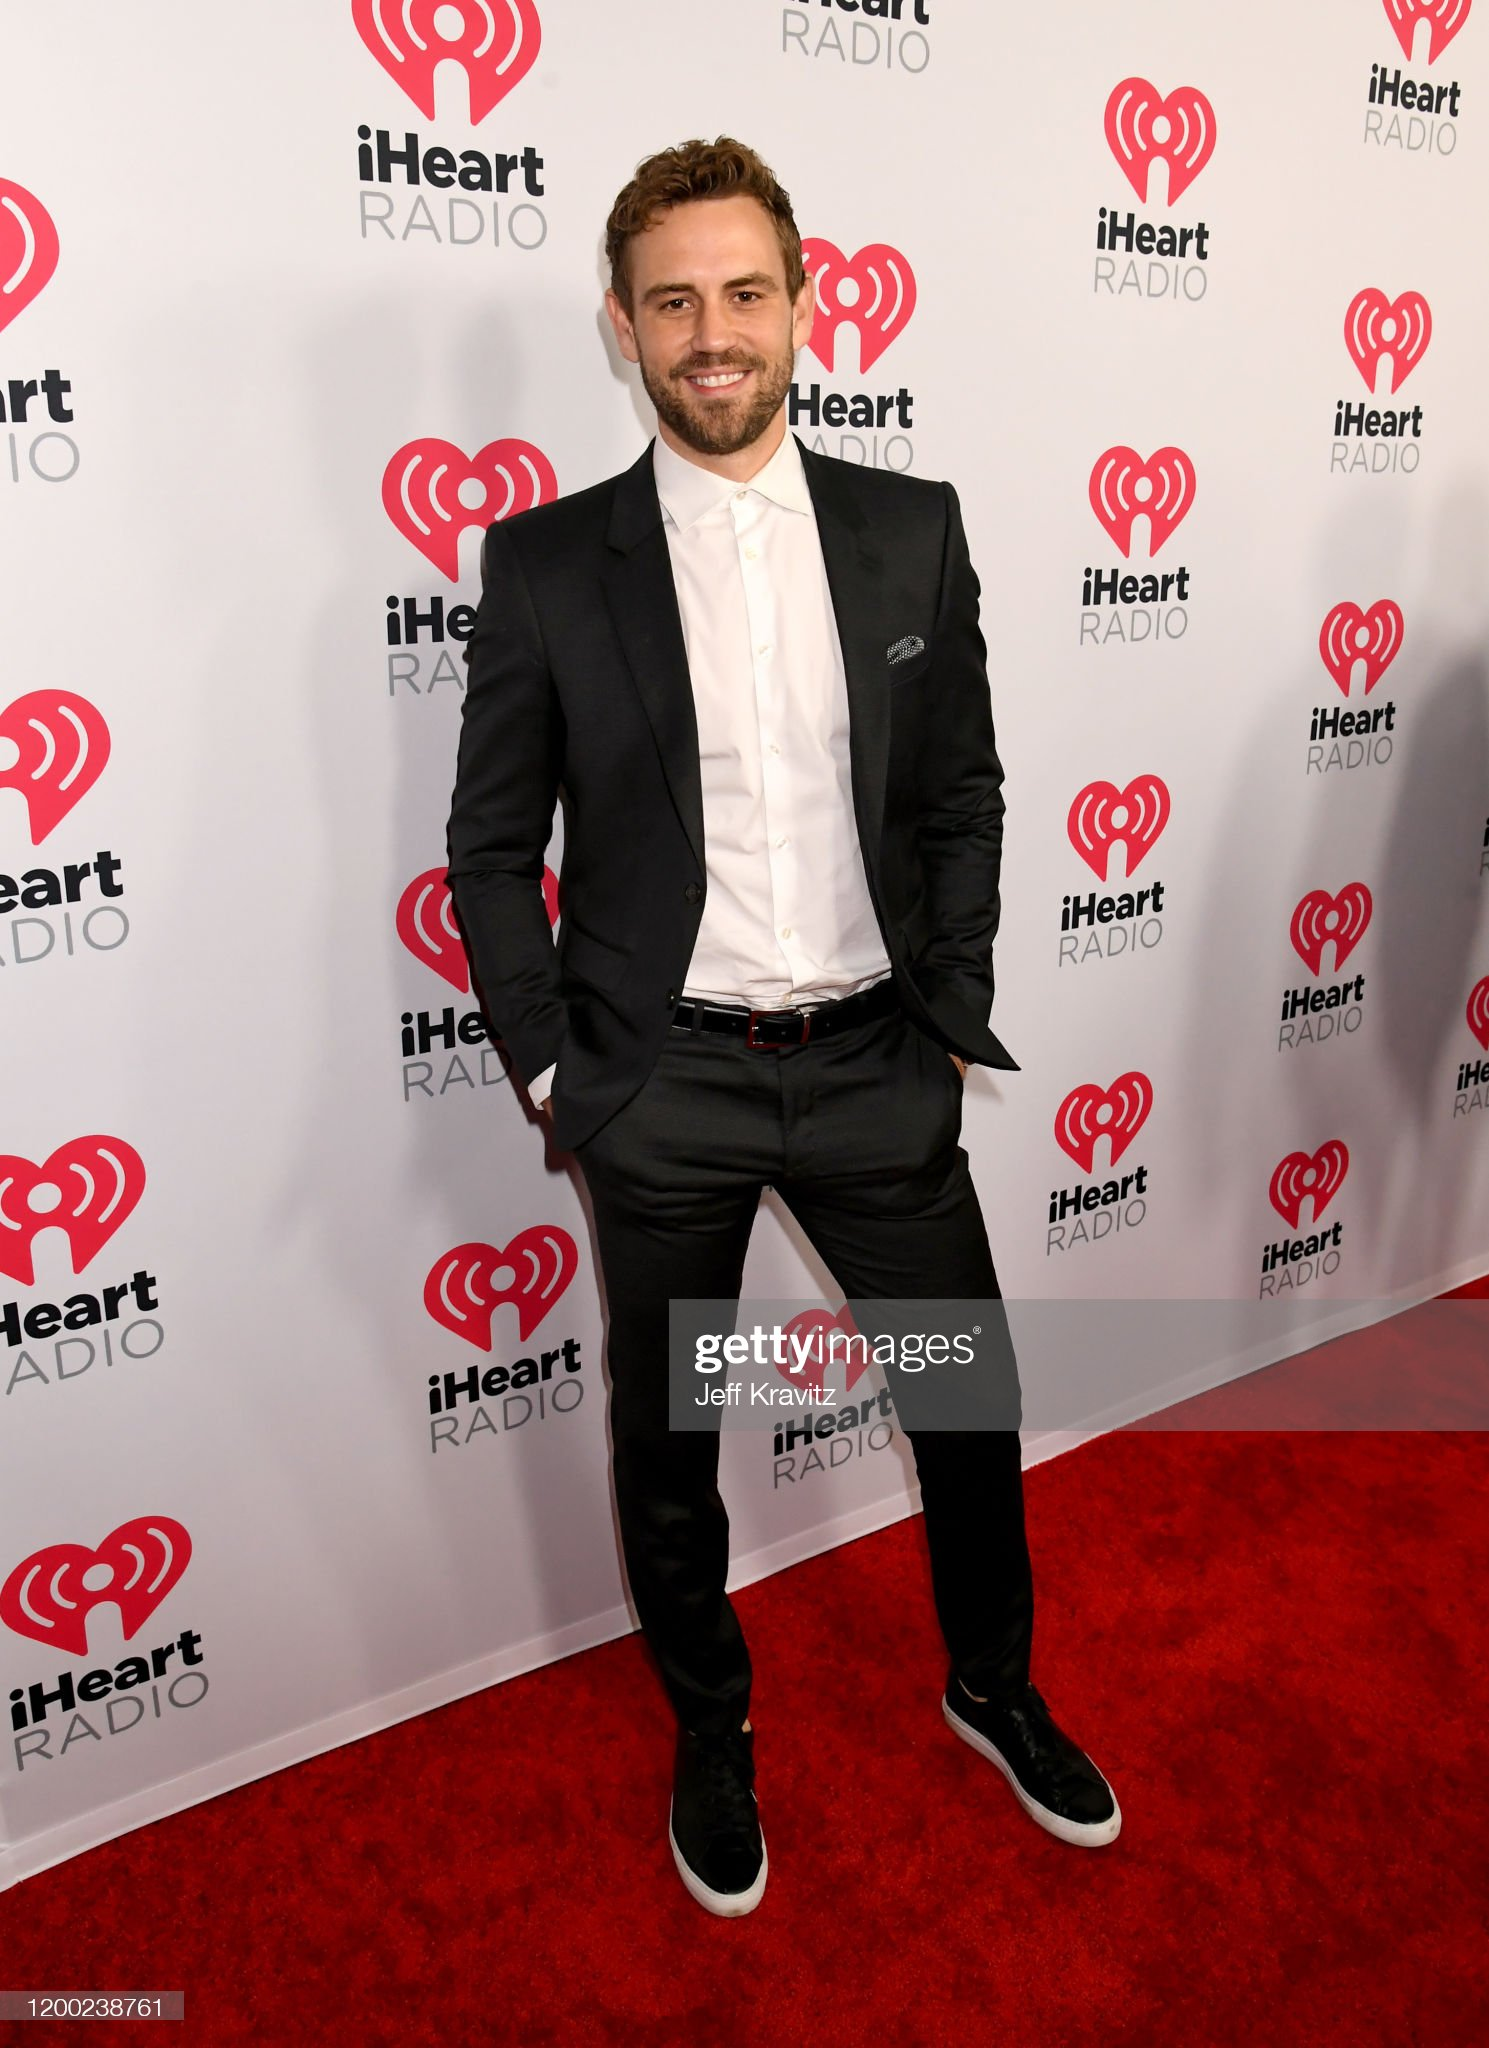 Nick Viall - Bachelor 21 - FAN Forum - Discussion #27 - Page 69 Nick-viall-attends-the-2020-iheartradio-podcast-awards-at-the-on-picture-id1200238761?s=2048x2048